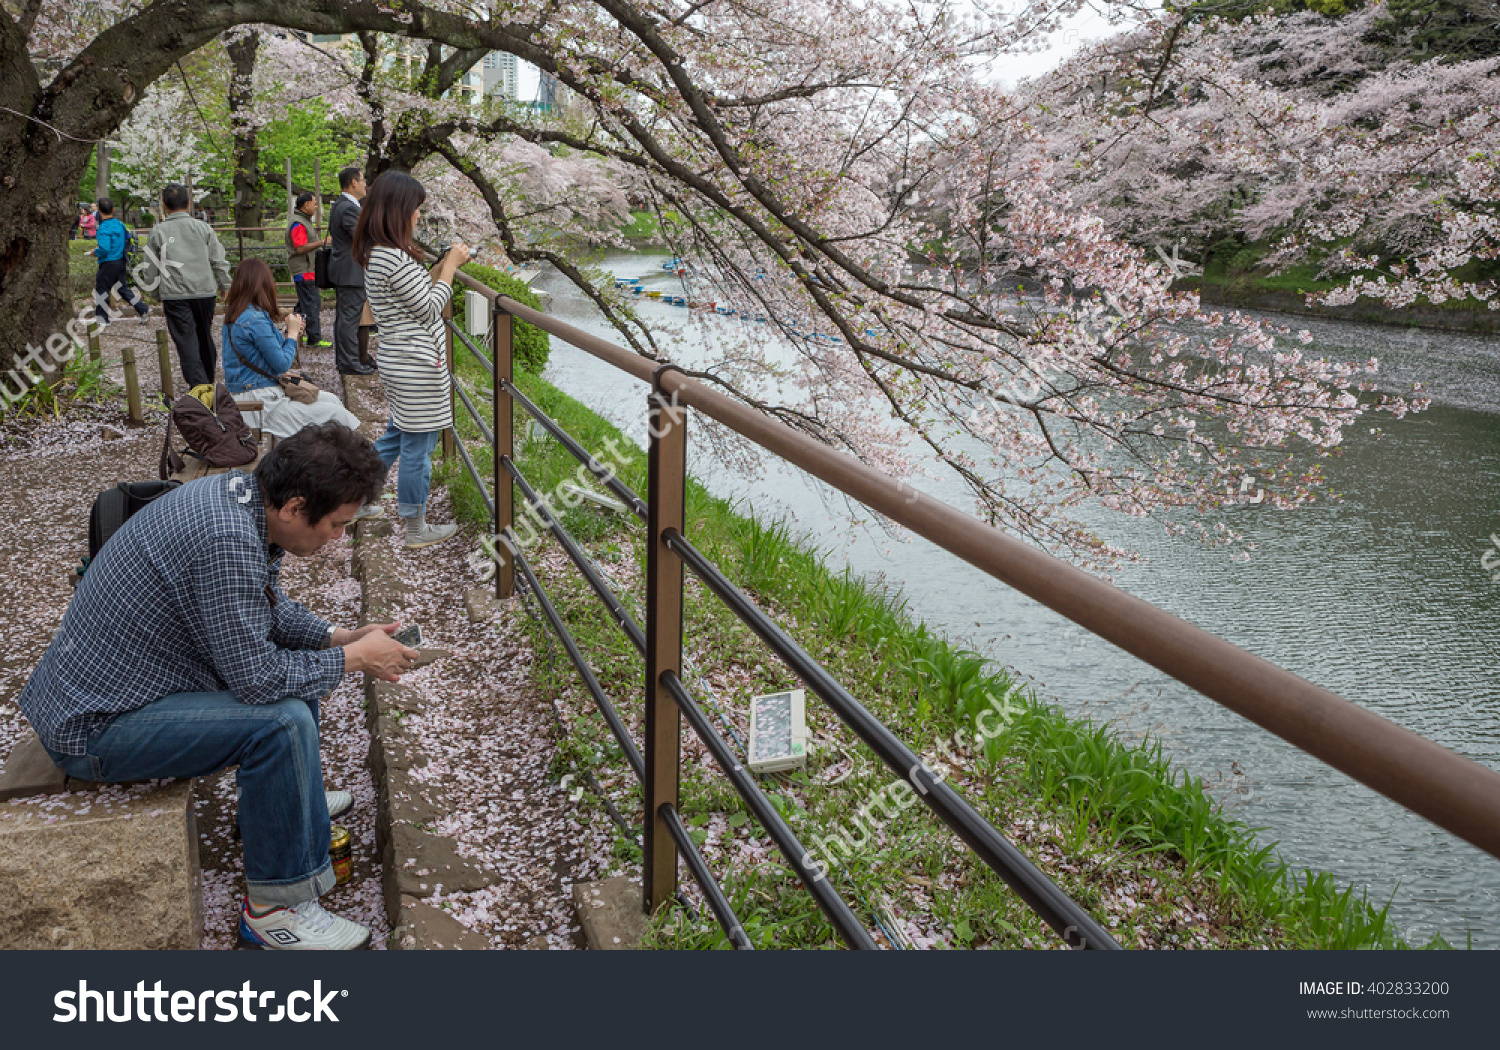 Tokyo Japan April 7th 2016 Tourist Stock Photo 402833200.